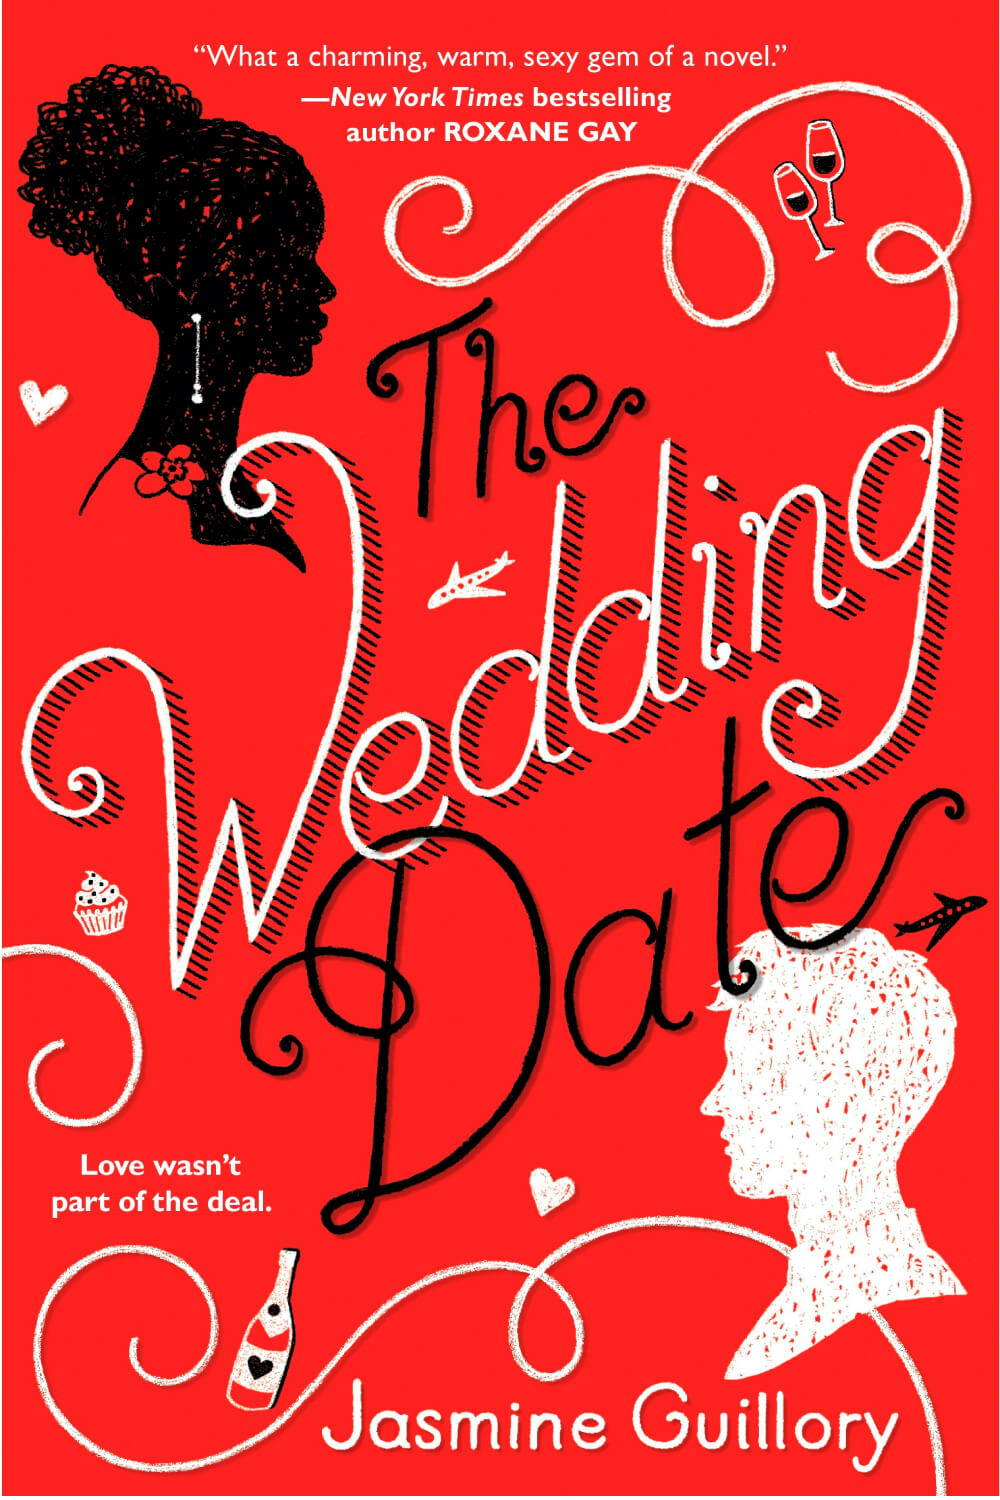 Summer Reading List 2018 The wedding date book